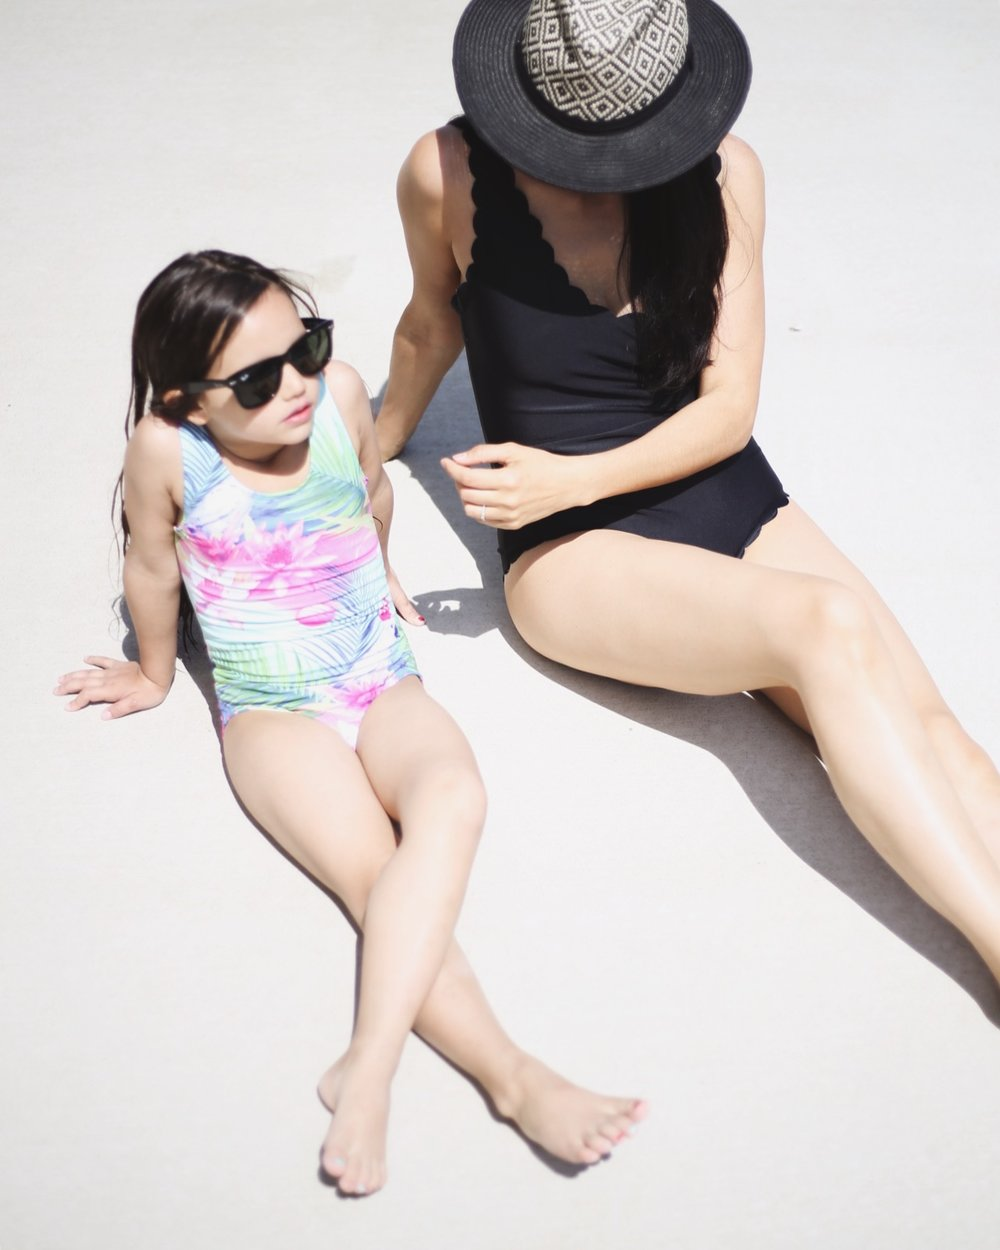 |  girl swimsuit similar  | girl  sunnies  |  scalloped one piece  |  hat similar  | image: Sydney Clawson |